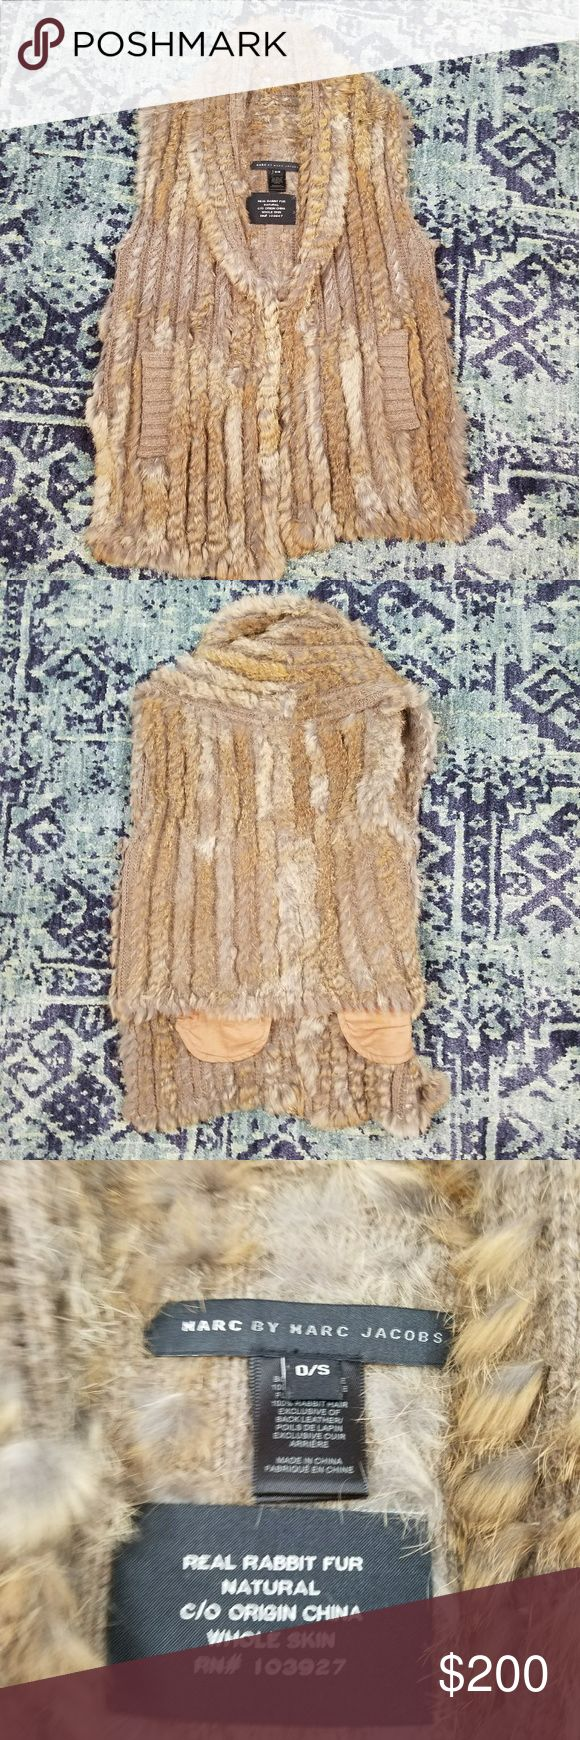 Marc Jacobs Rabbit Fur Vest Marc Jacobs Rabbit Fur Vest. In good pre owned condition. Worn 3 times.  One size. Color is more accurate to model picture. Marc By Marc Jacobs Tops